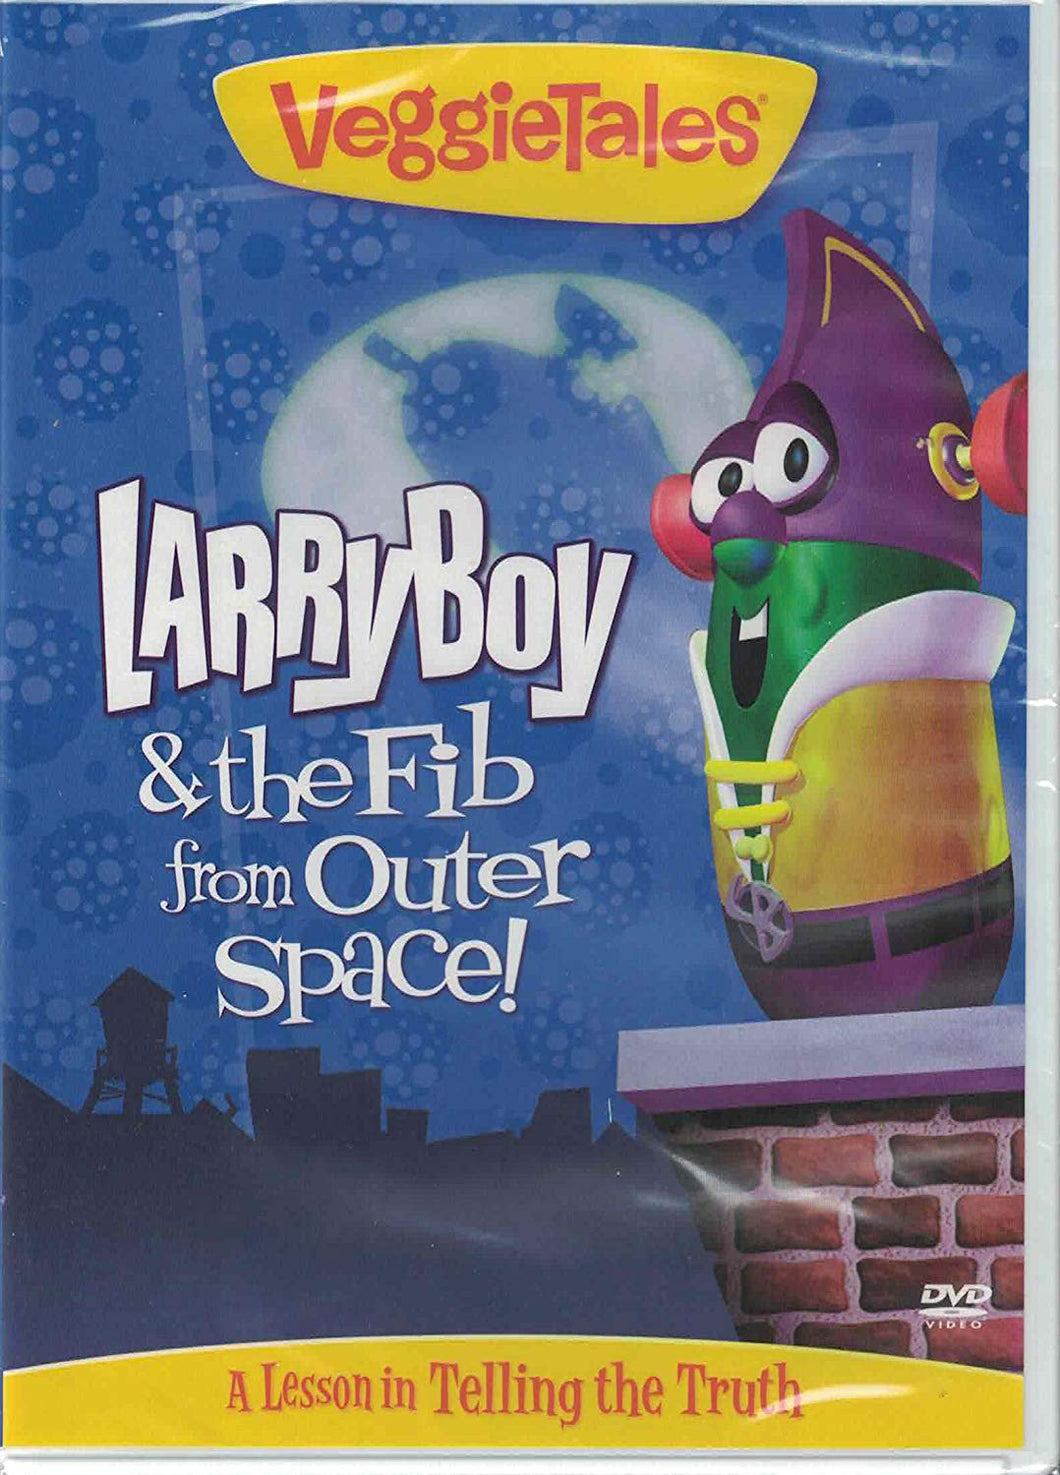 Larry-Boy! and the Fib from Outer Space